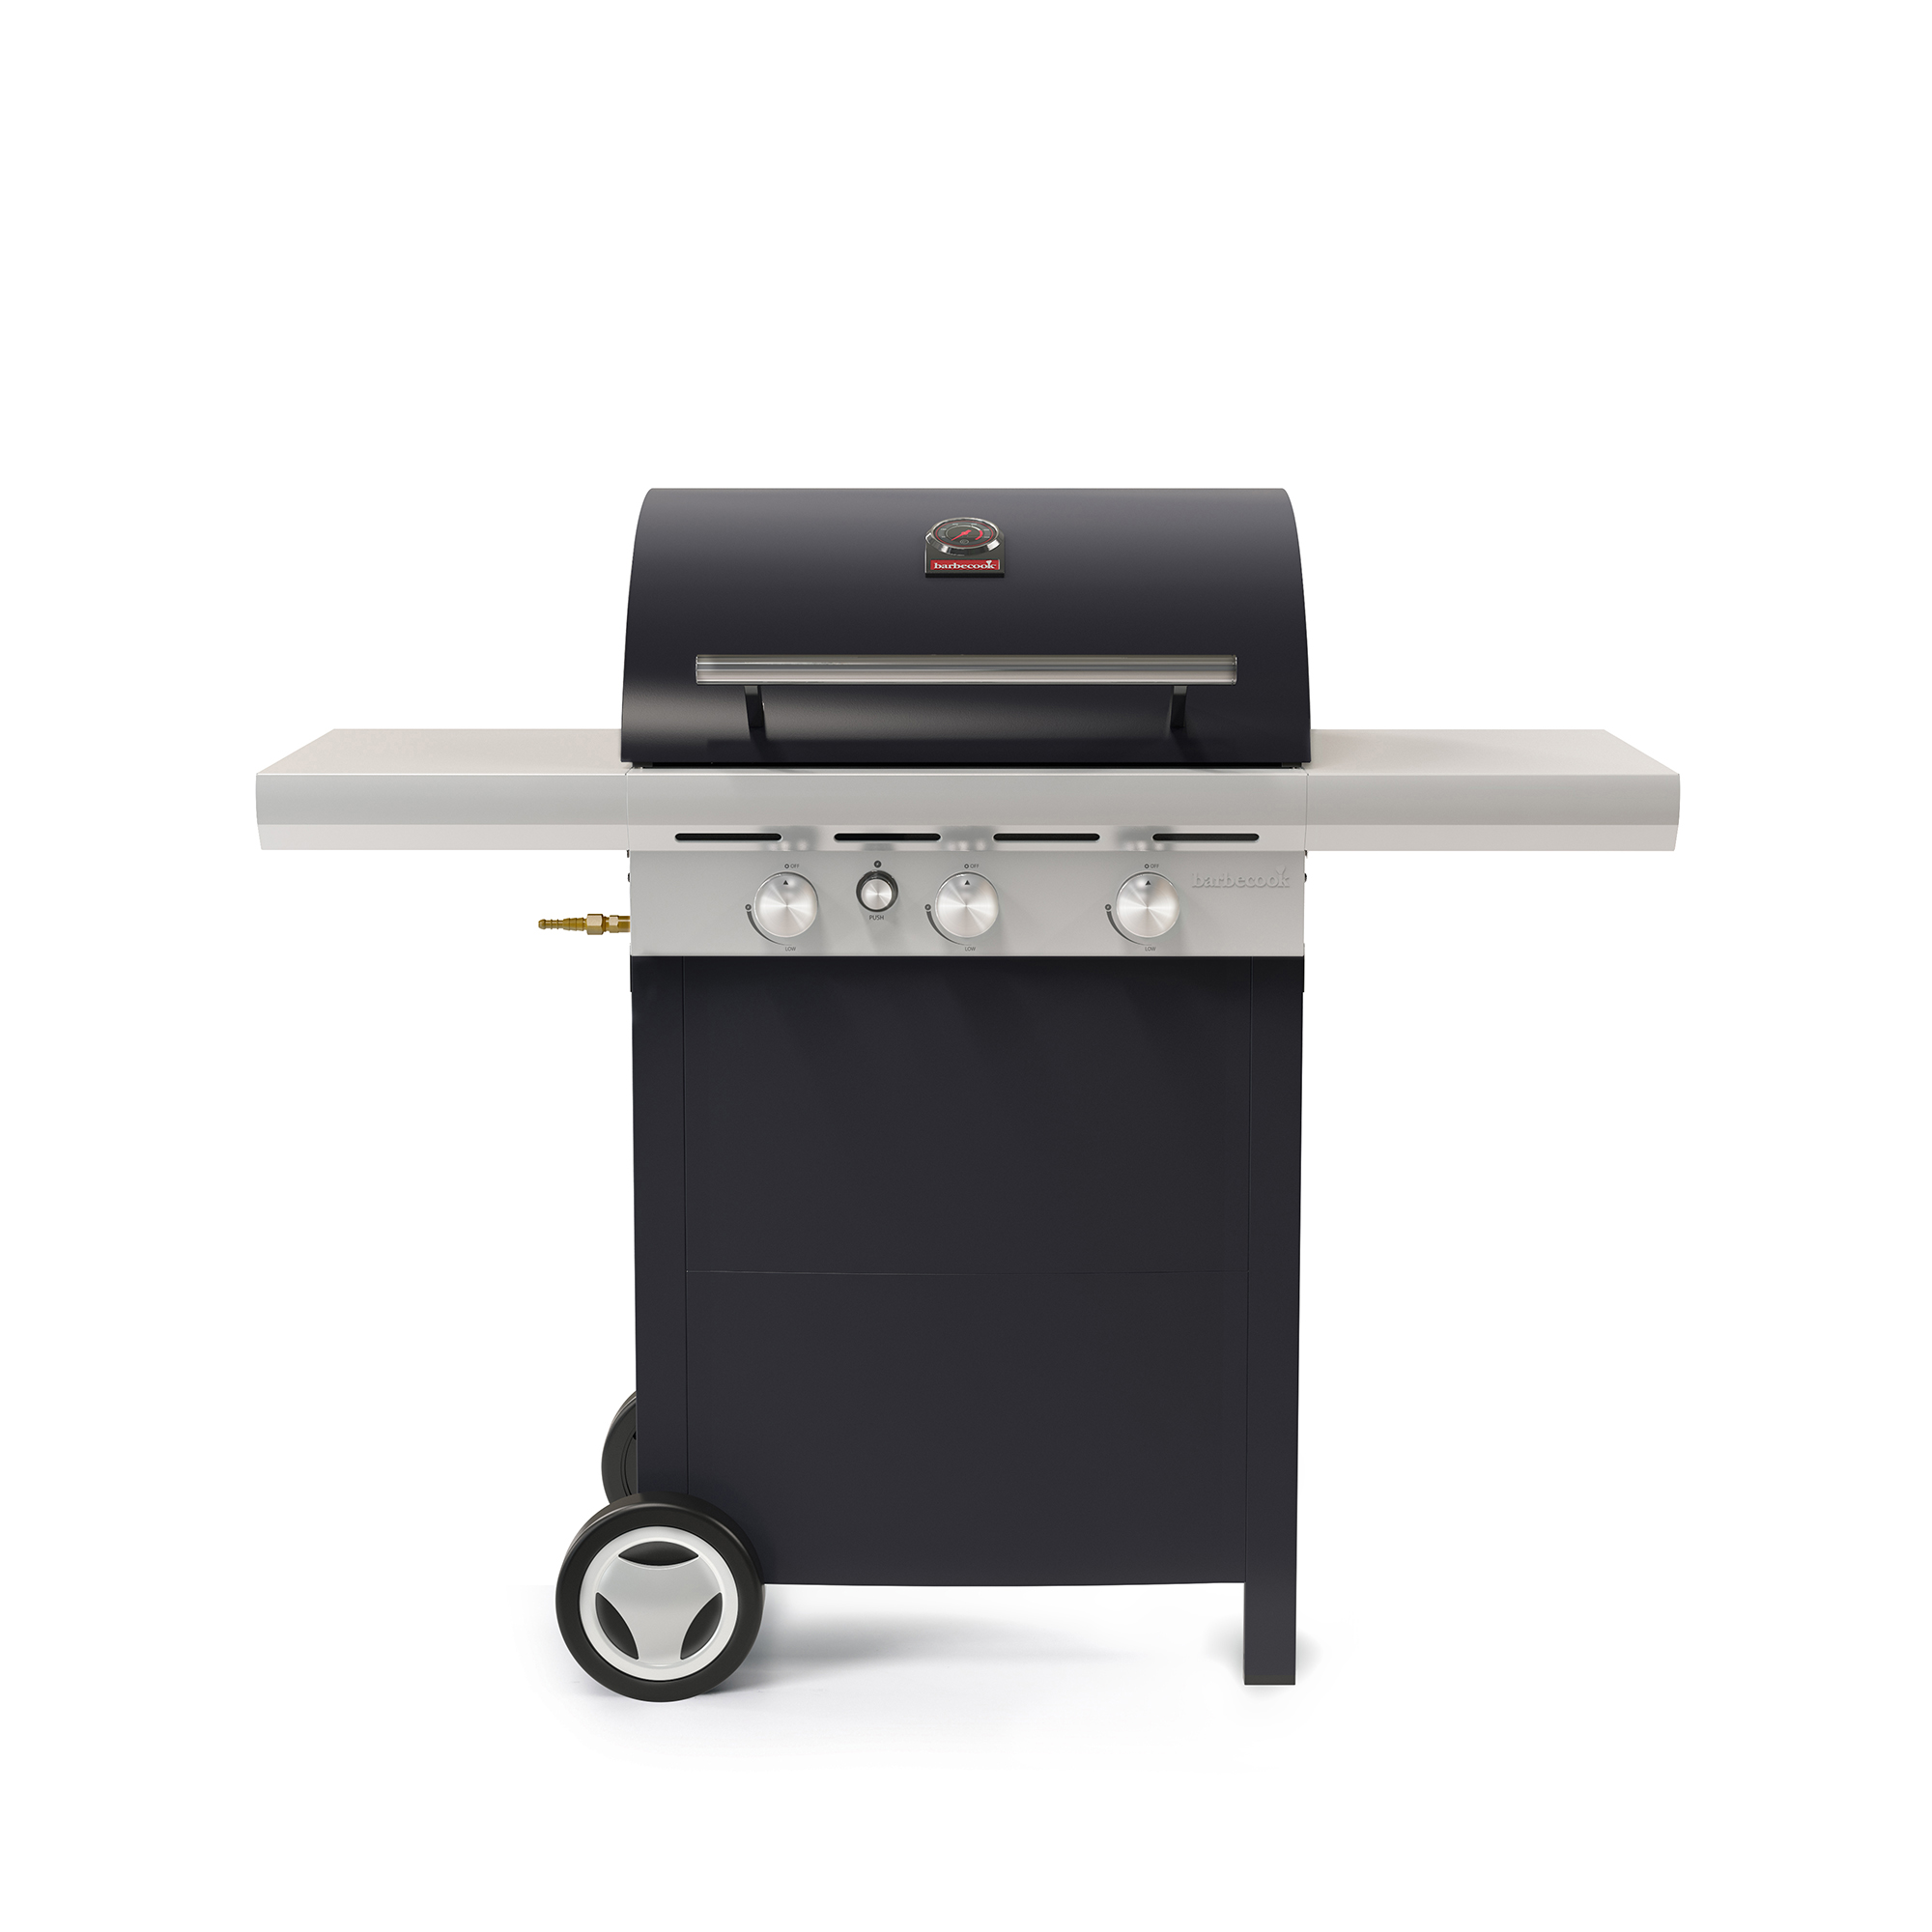 Barbecook Spring 3002 gas barbecue 133x57x115cm